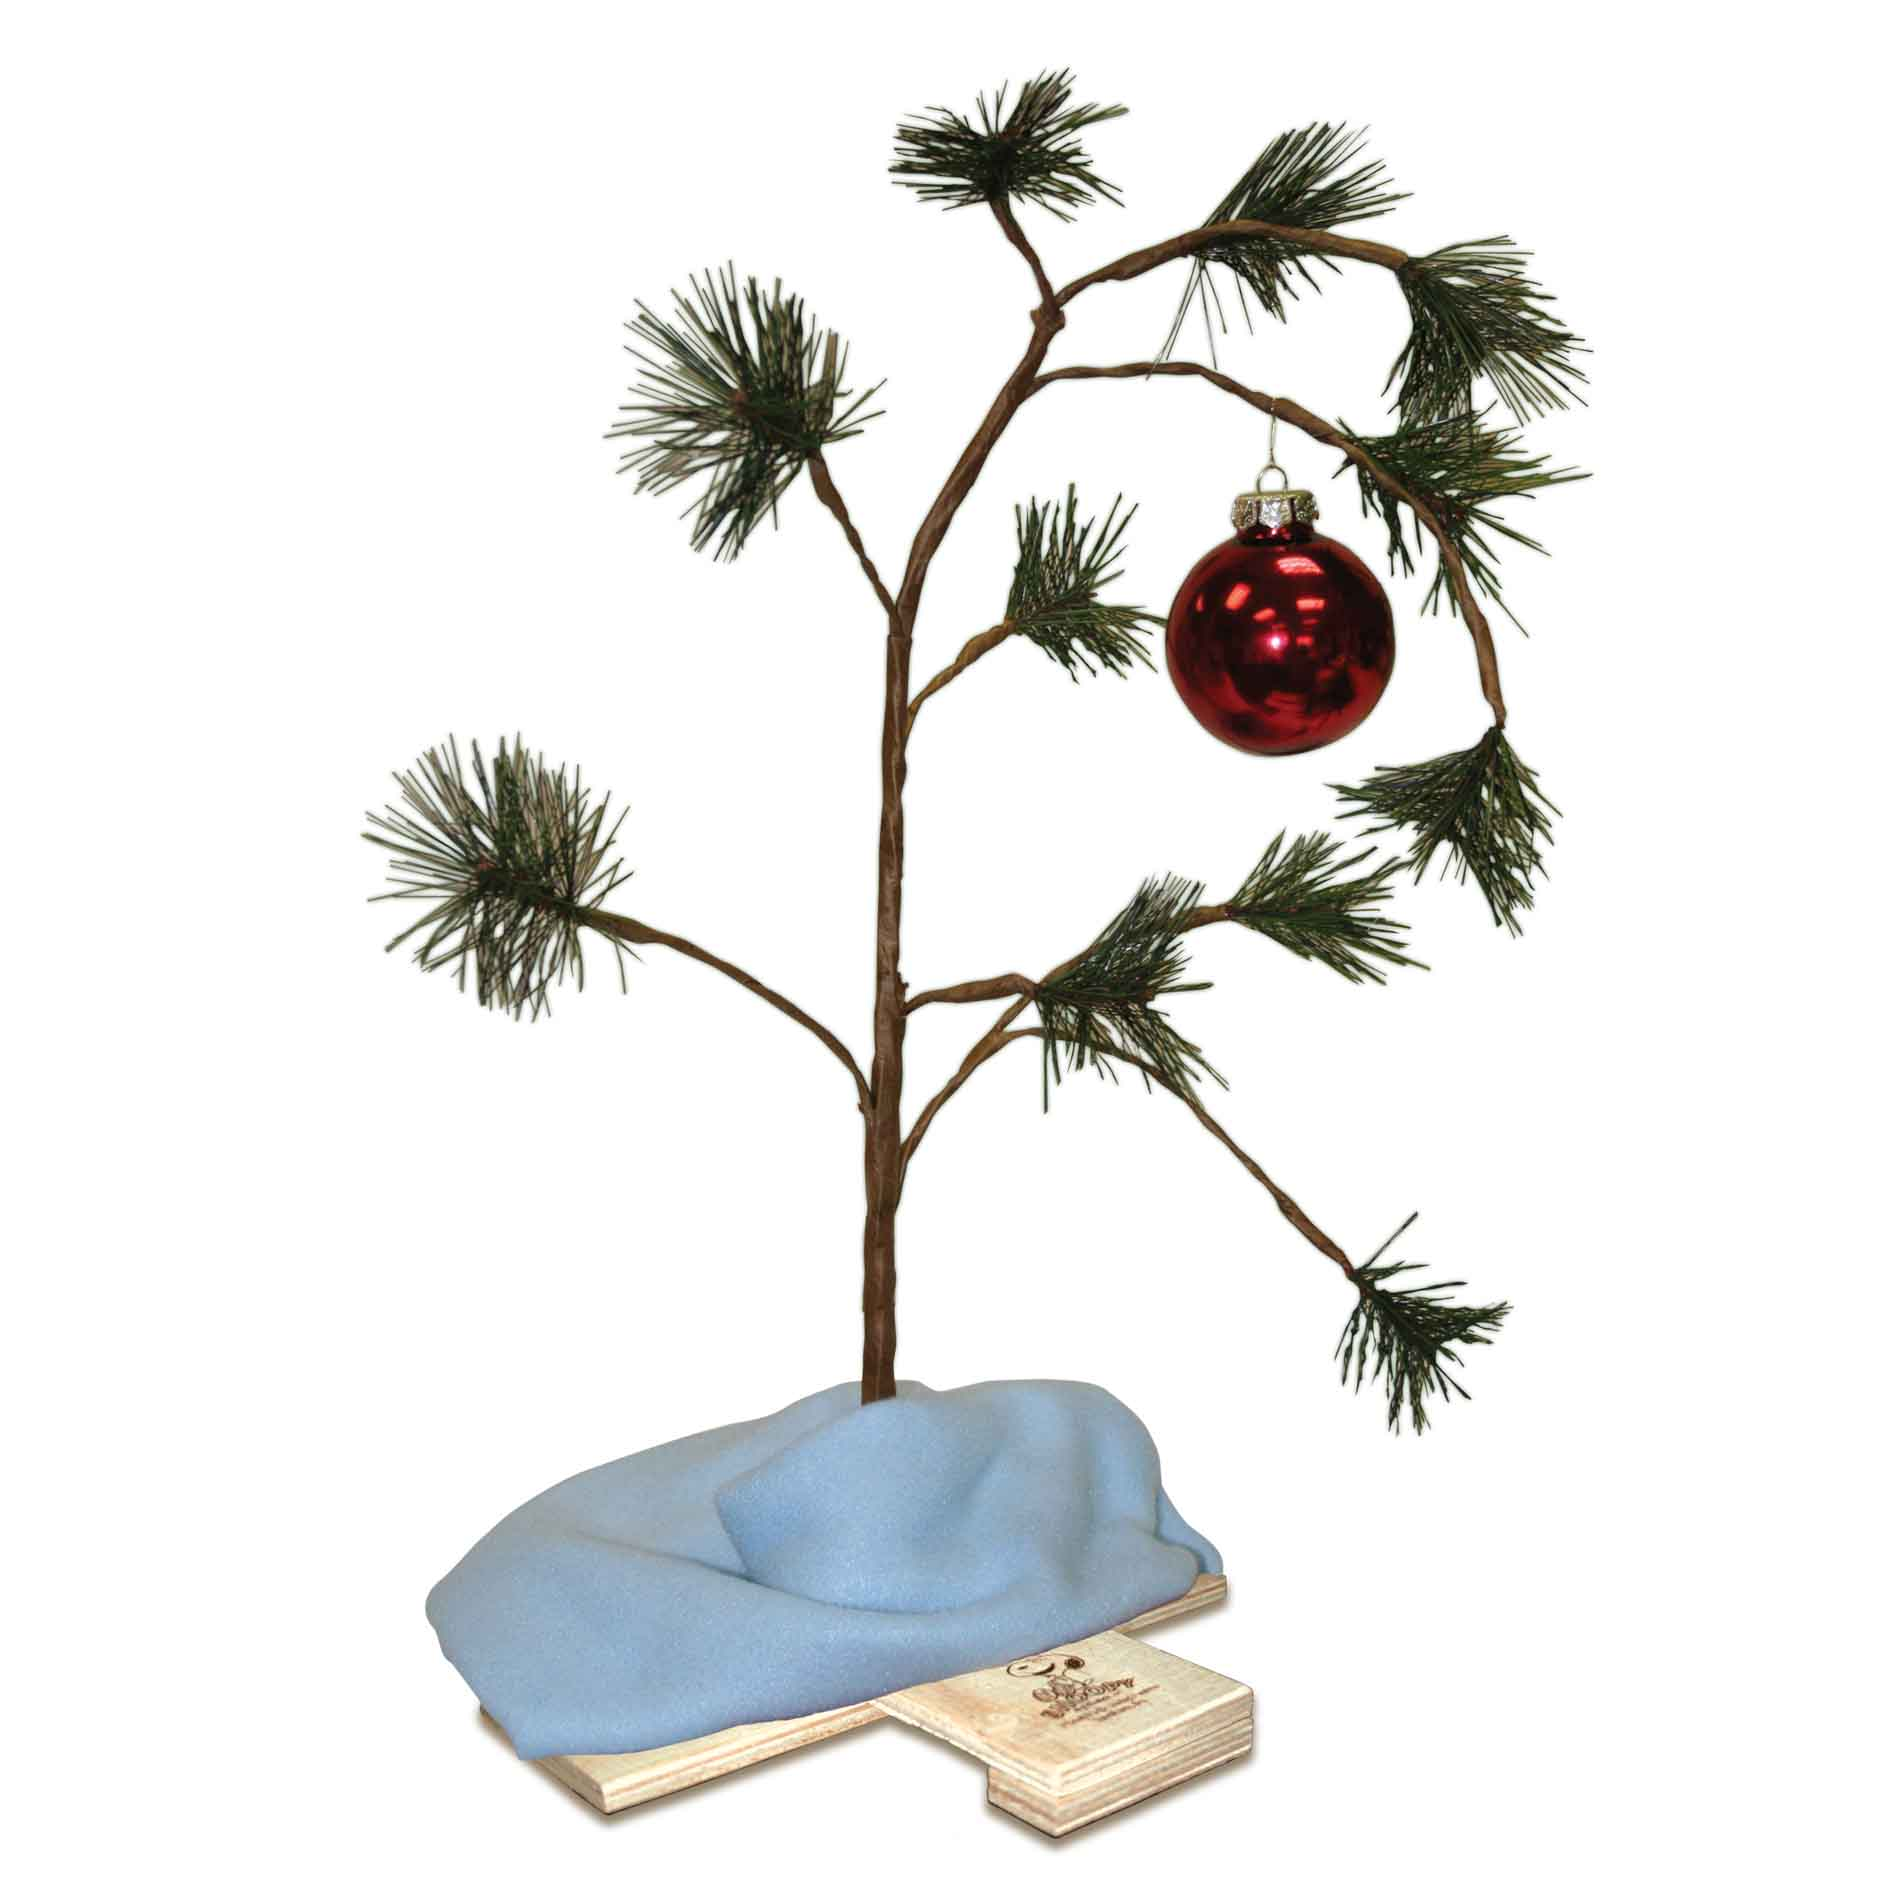 24in-Musical-Charlie-Brown-Christmas-Tree-with-Red-Ornament-and-Blanket